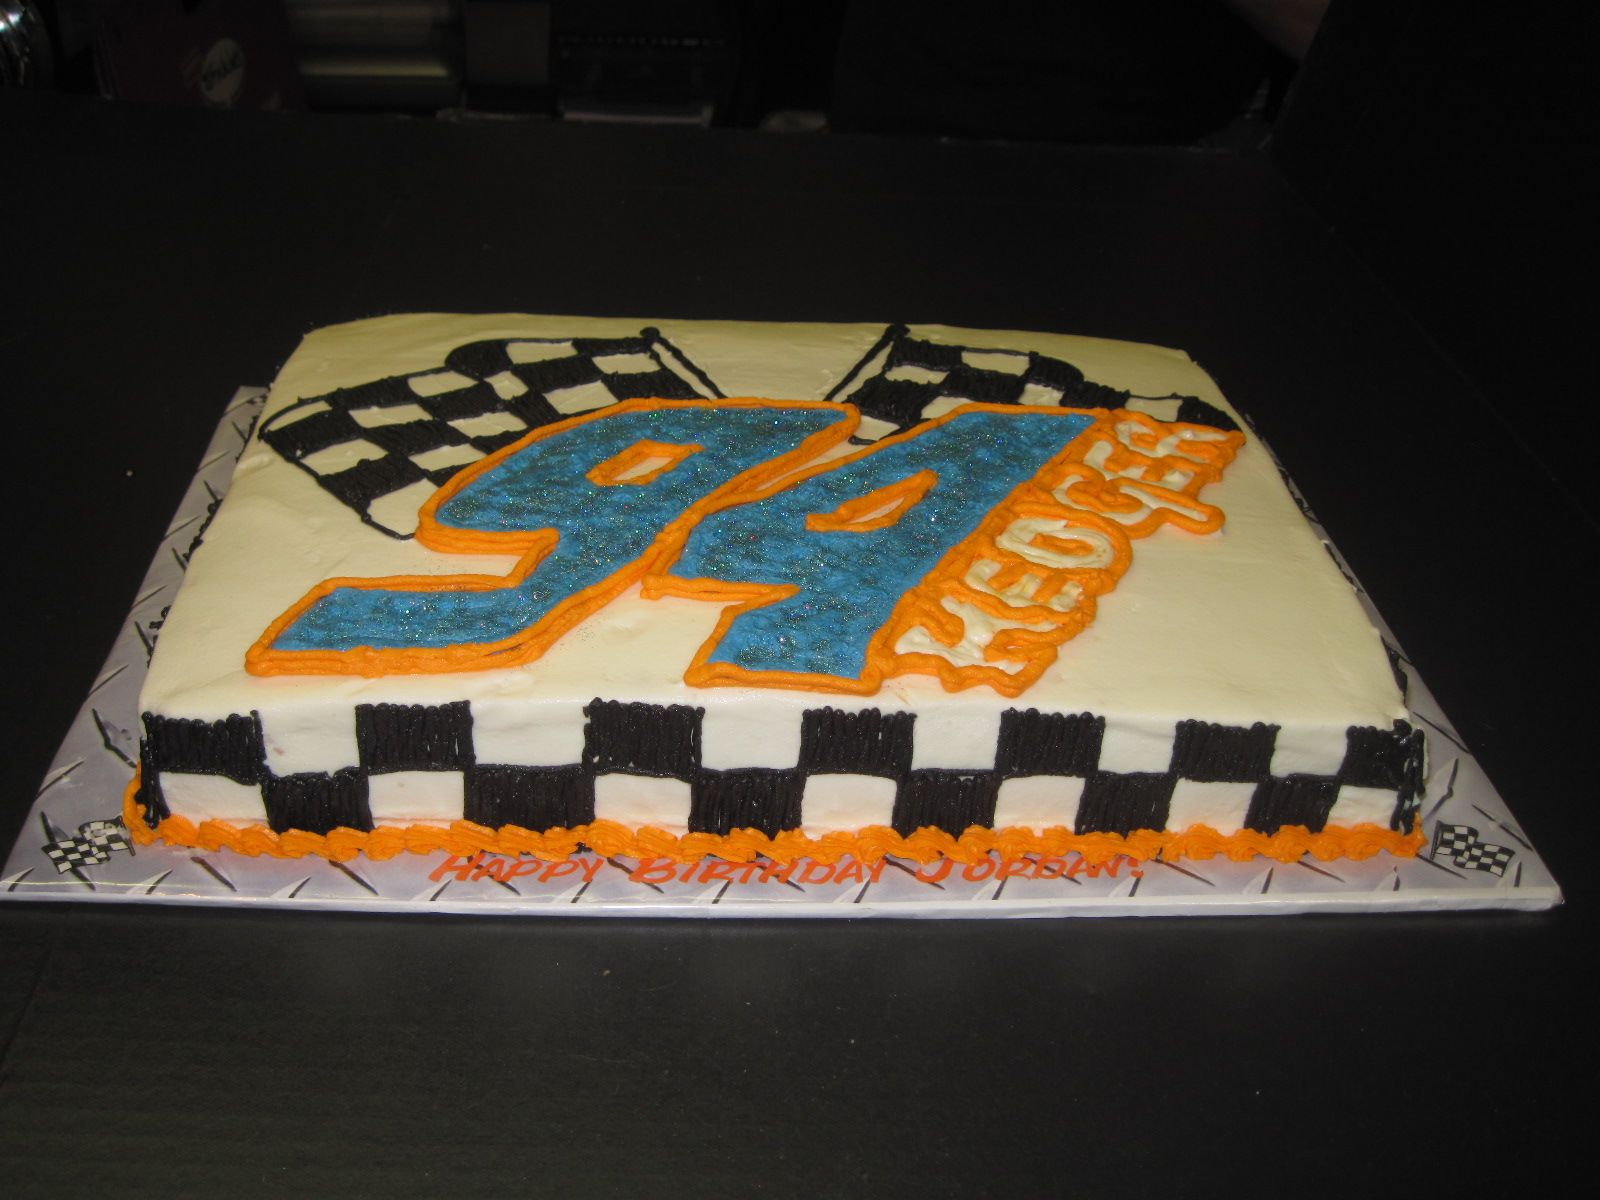 Cake Decorating Checkered Flag : Jordan Hedger Racing. checkered flag cake Sweet Southern ...